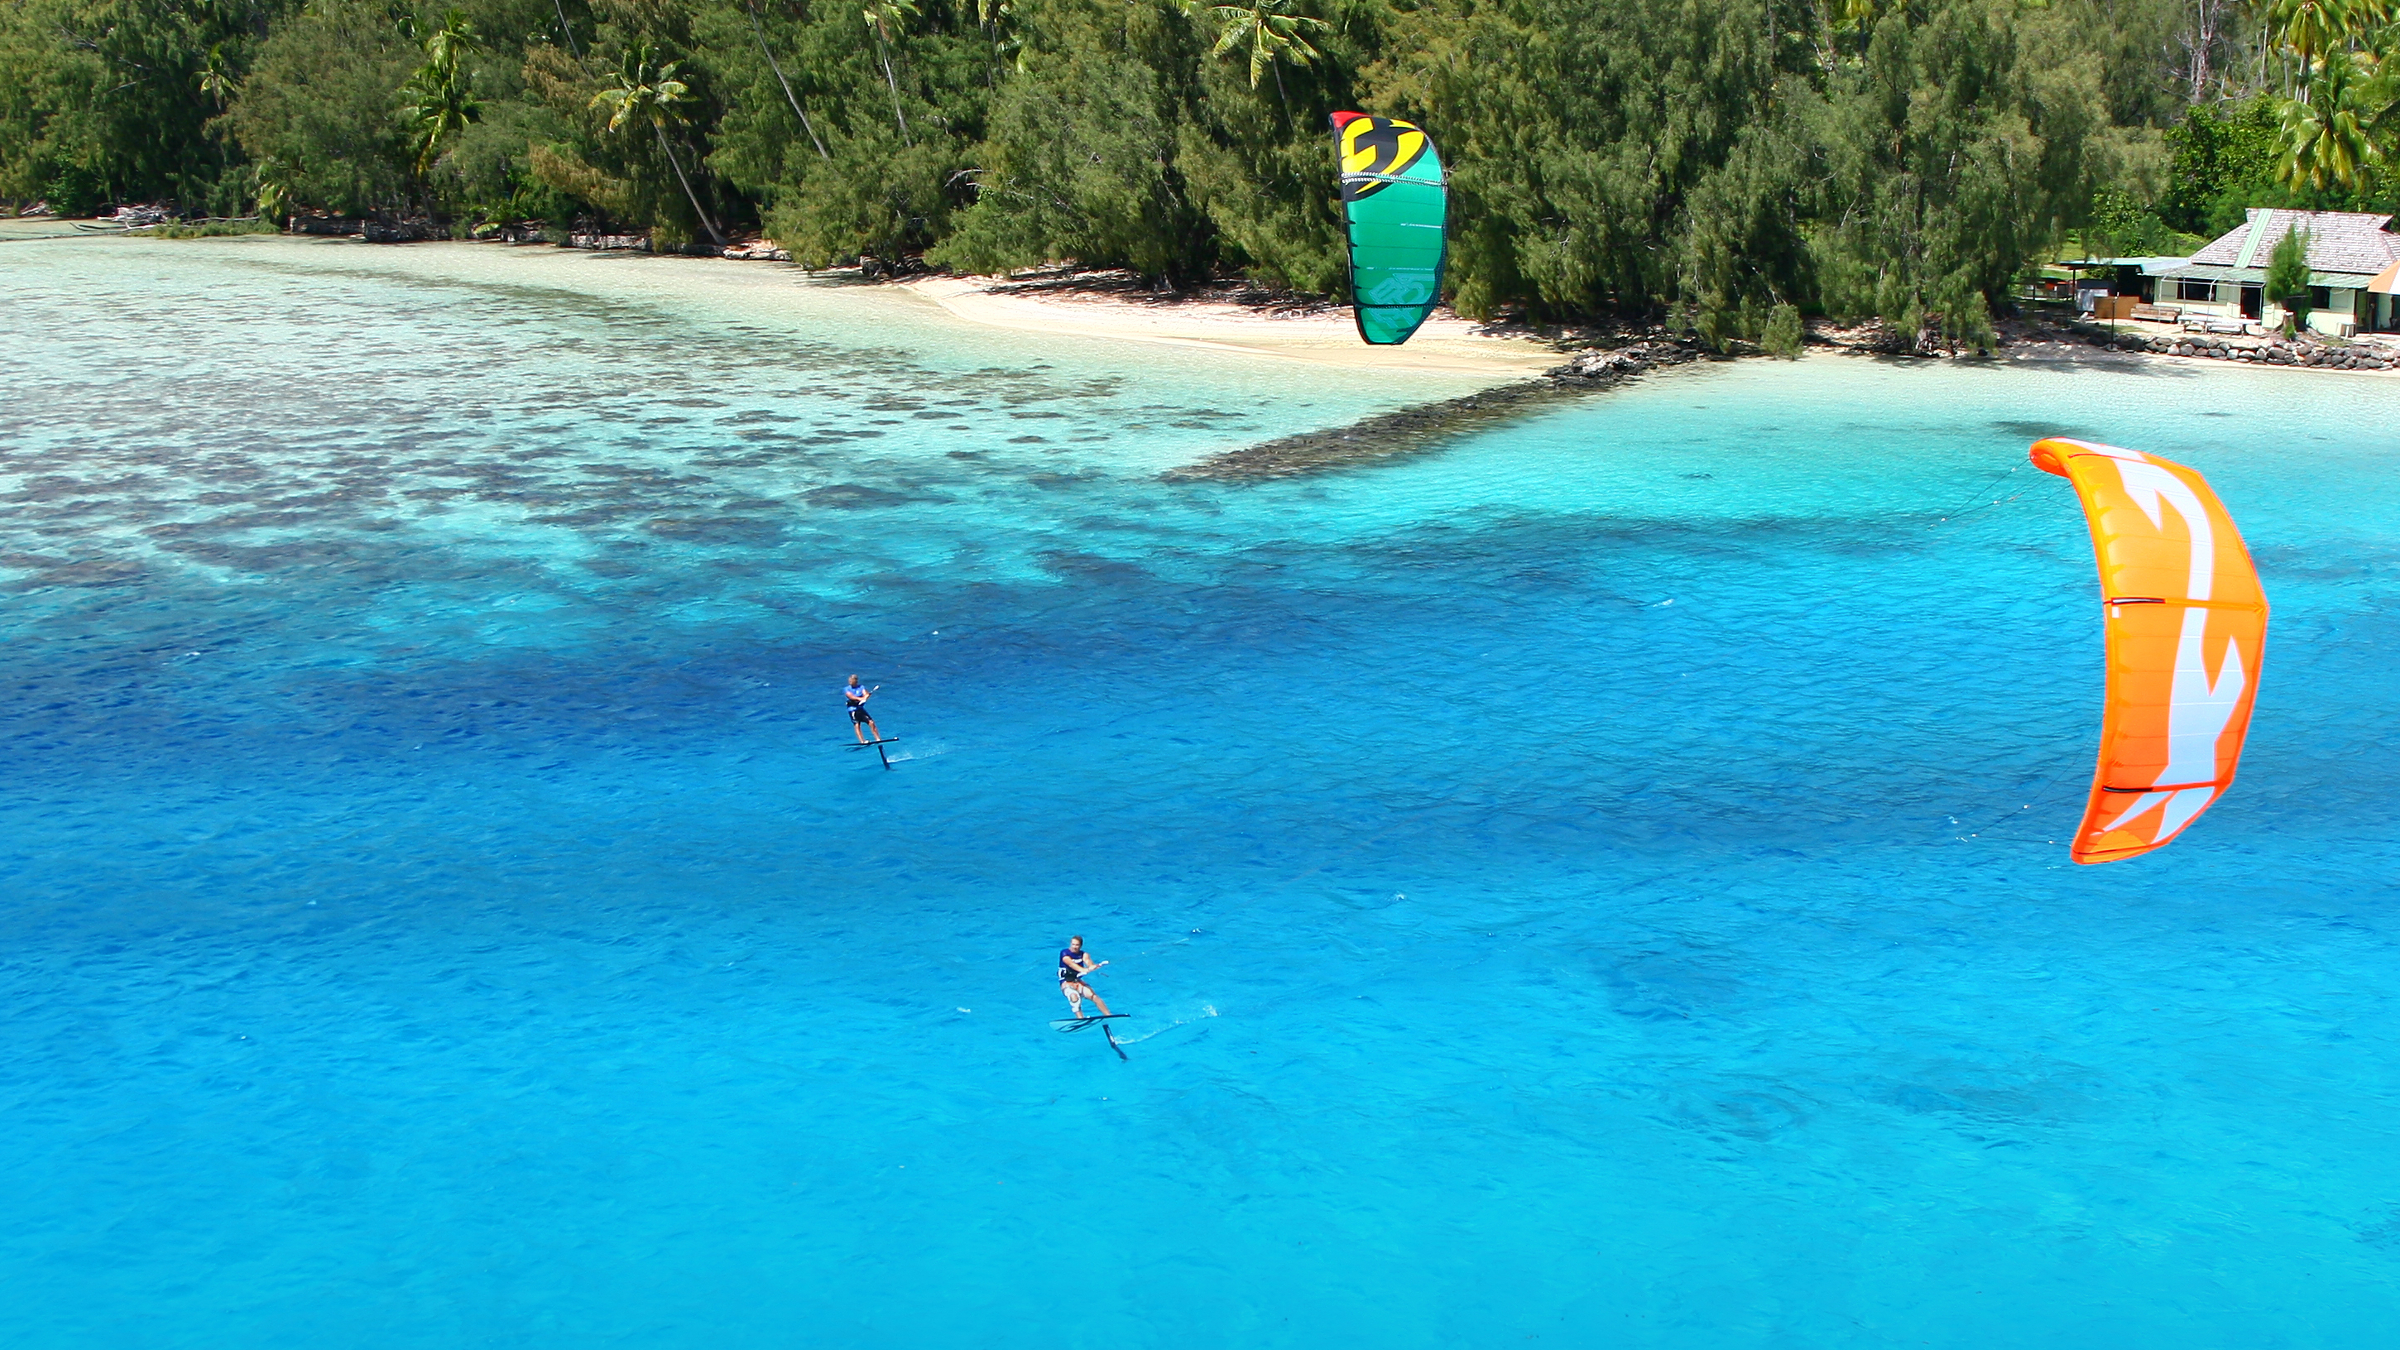 kitesurf wallpaper image - Cruising on the foilboards with the 2015 F-One Bandit - kitesurfing in tropical waters - in resolution: High Definition - HD 16:9 2400 X 1350